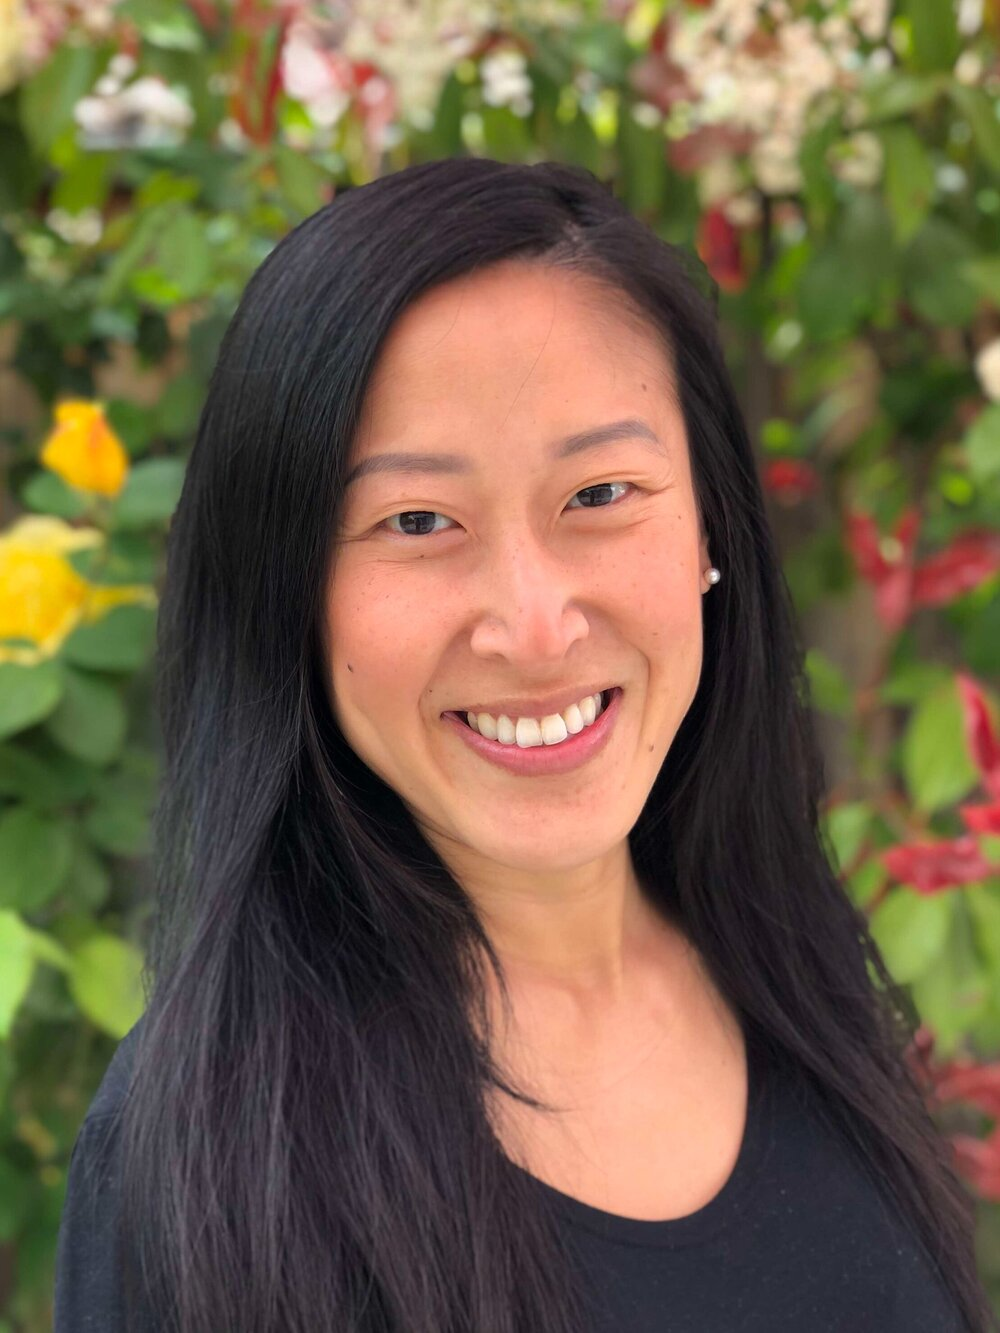 Jessica Yu, Ph.D.    Licensed Psychologist   Dr. Yu is a licensed clinical psychologist with expertise in the evidence-based assessment and treatment of anxiety, depression, eating disorders, trauma, and behavioral health conditions such as obesity and sleep difficulties. Los Altos ,  Menlo Park